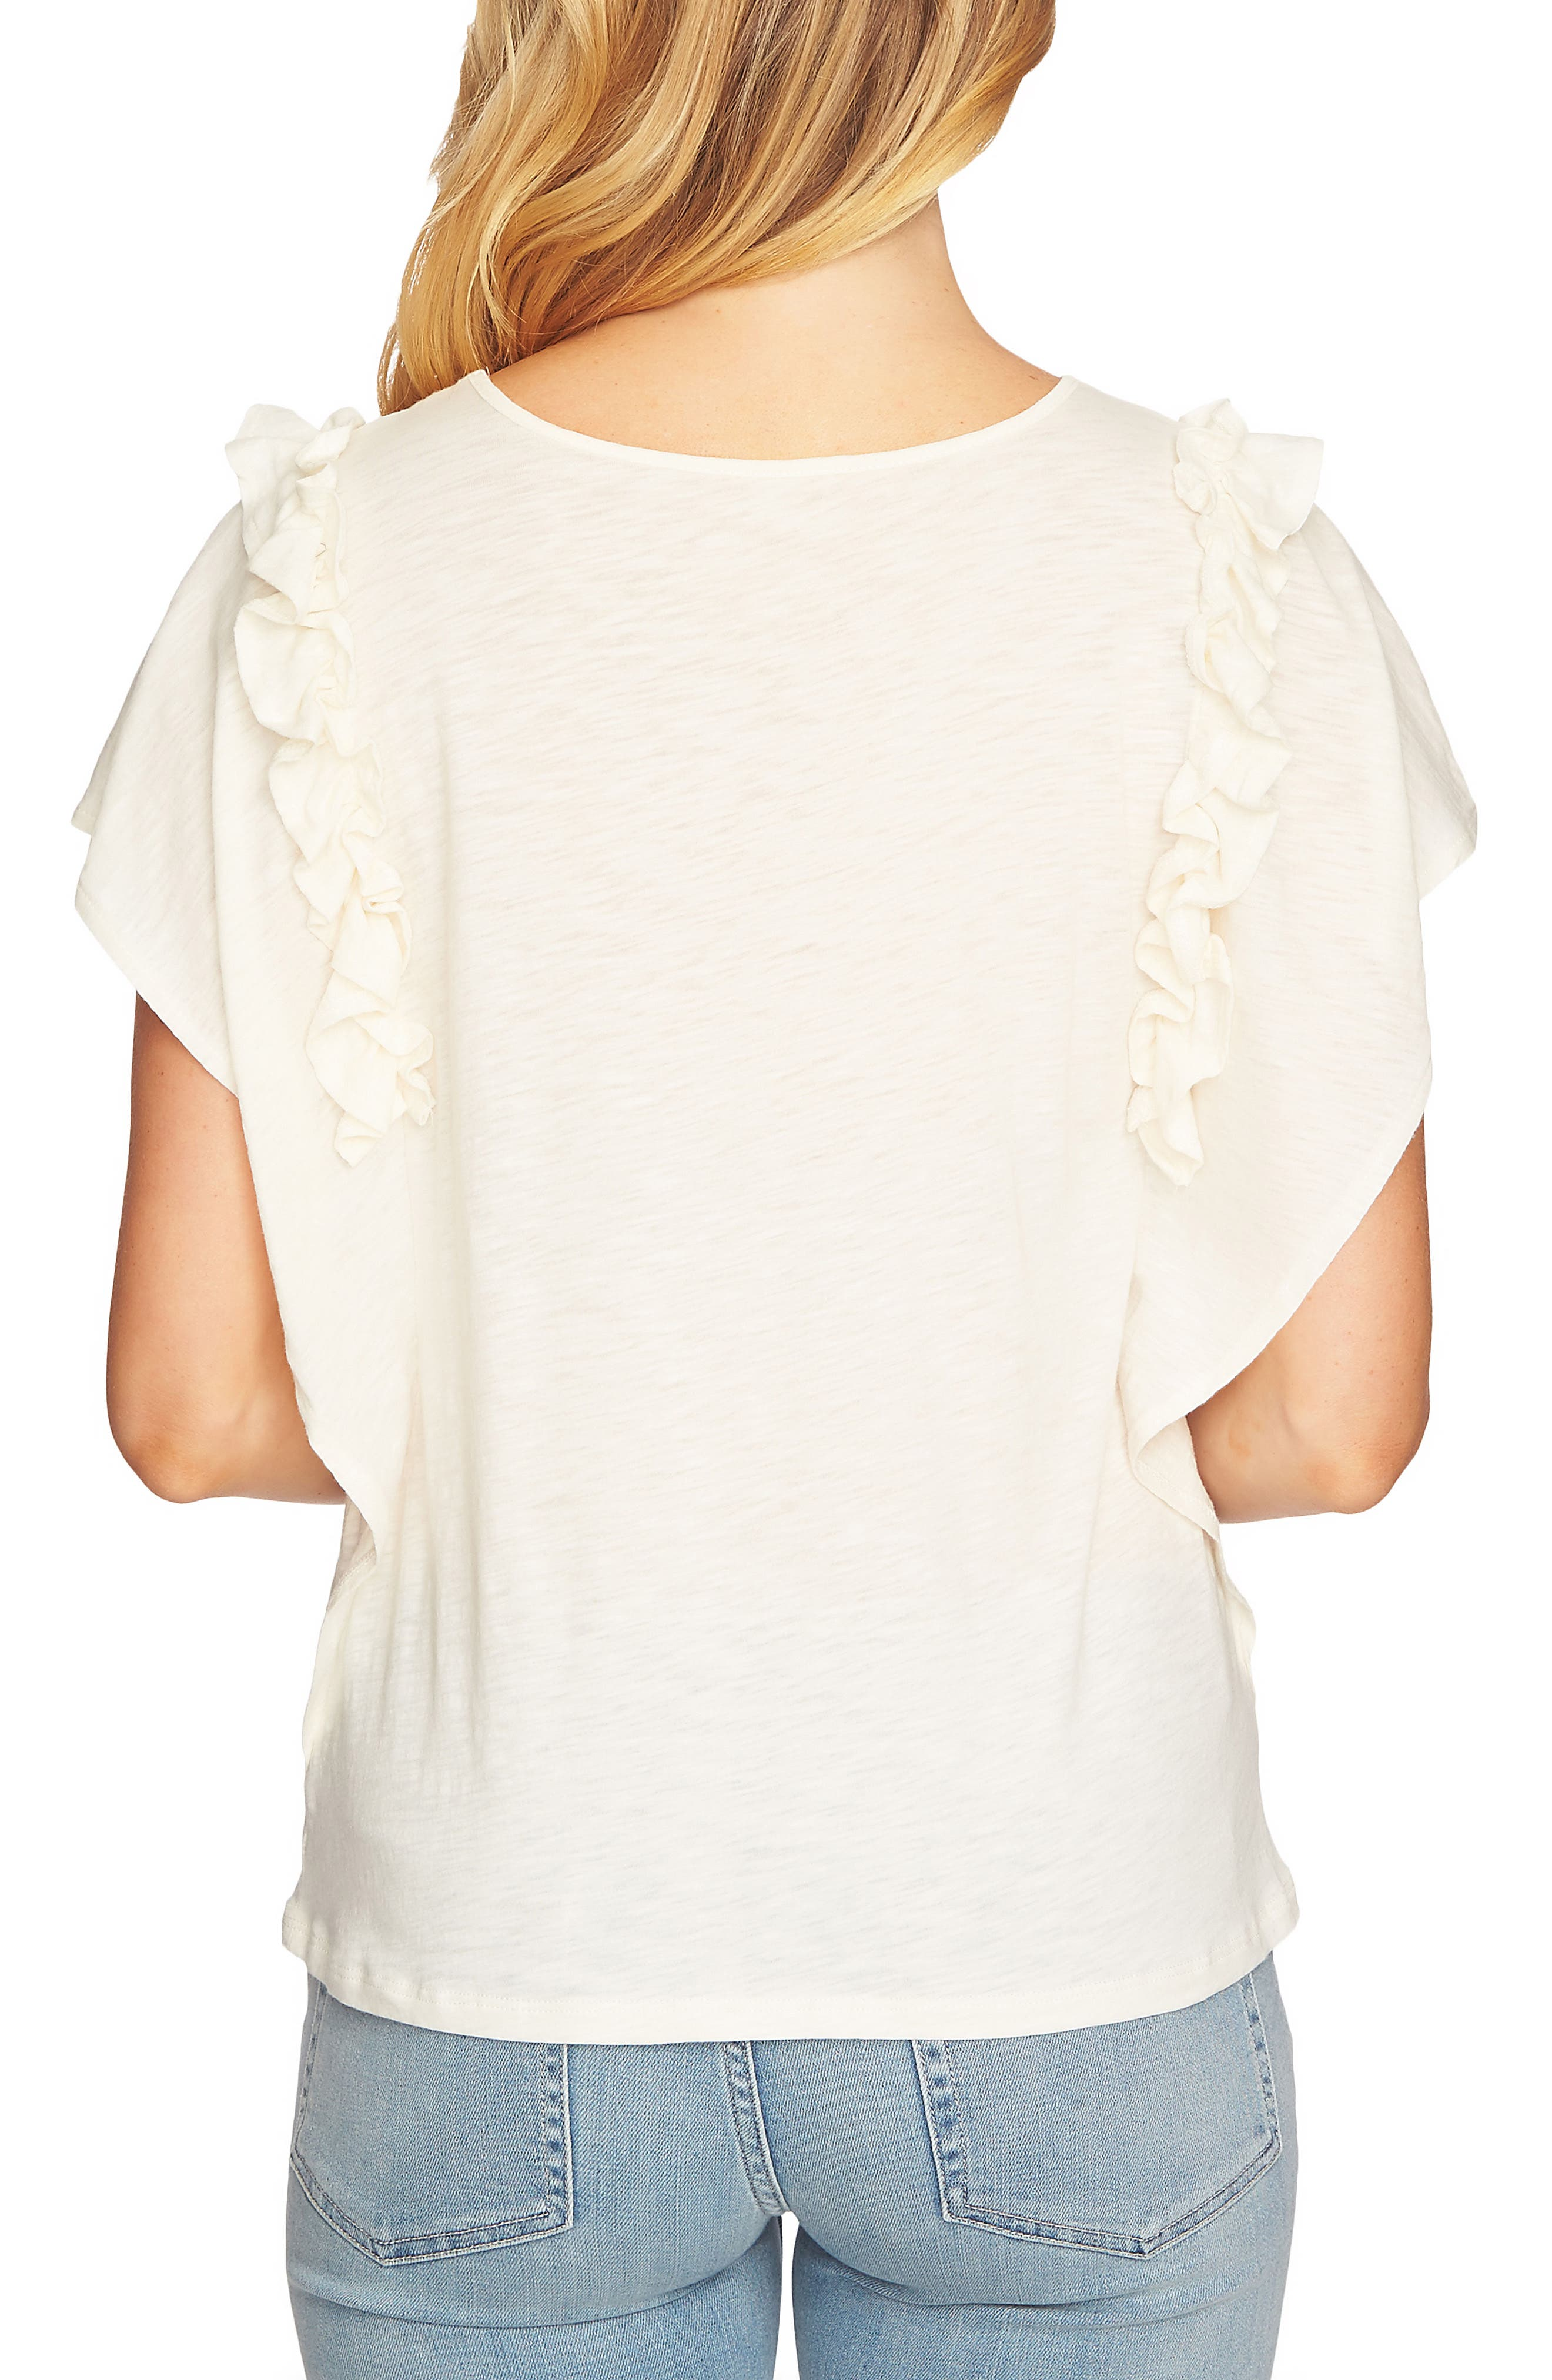 Ruffle Sleeve Top,                             Alternate thumbnail 2, color,                             Antique White